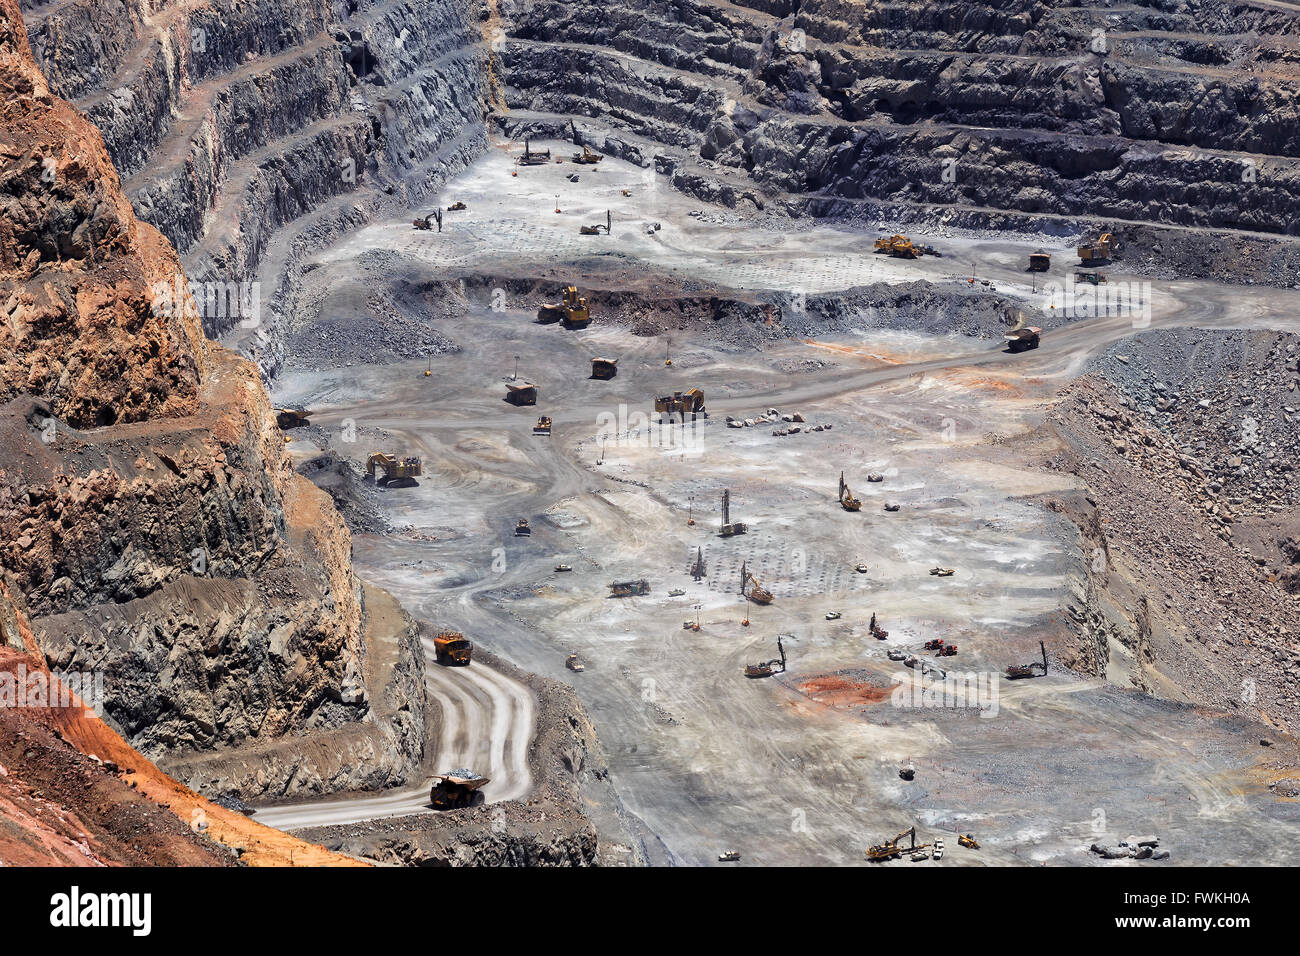 Deep down in the super pit gold mine of Kalgoorlie in Western Australia. Big exavators, trucks and other machinery - Stock Image